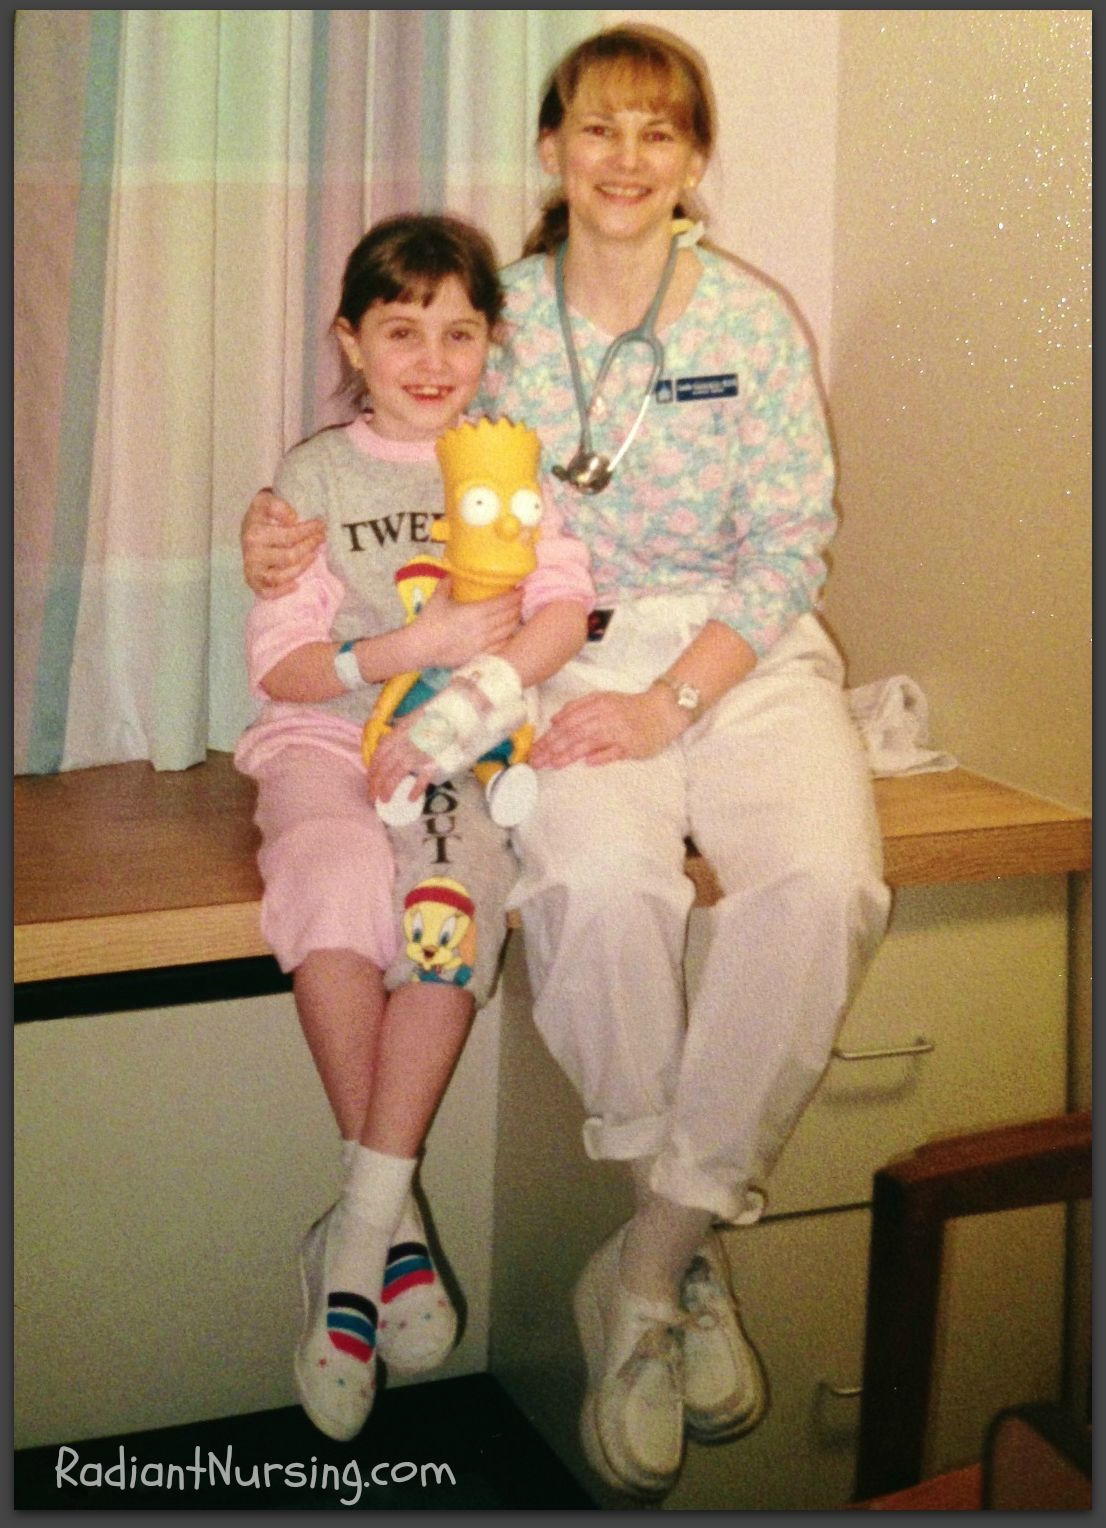 Remember your first nursing job? Working in Pediatrics.